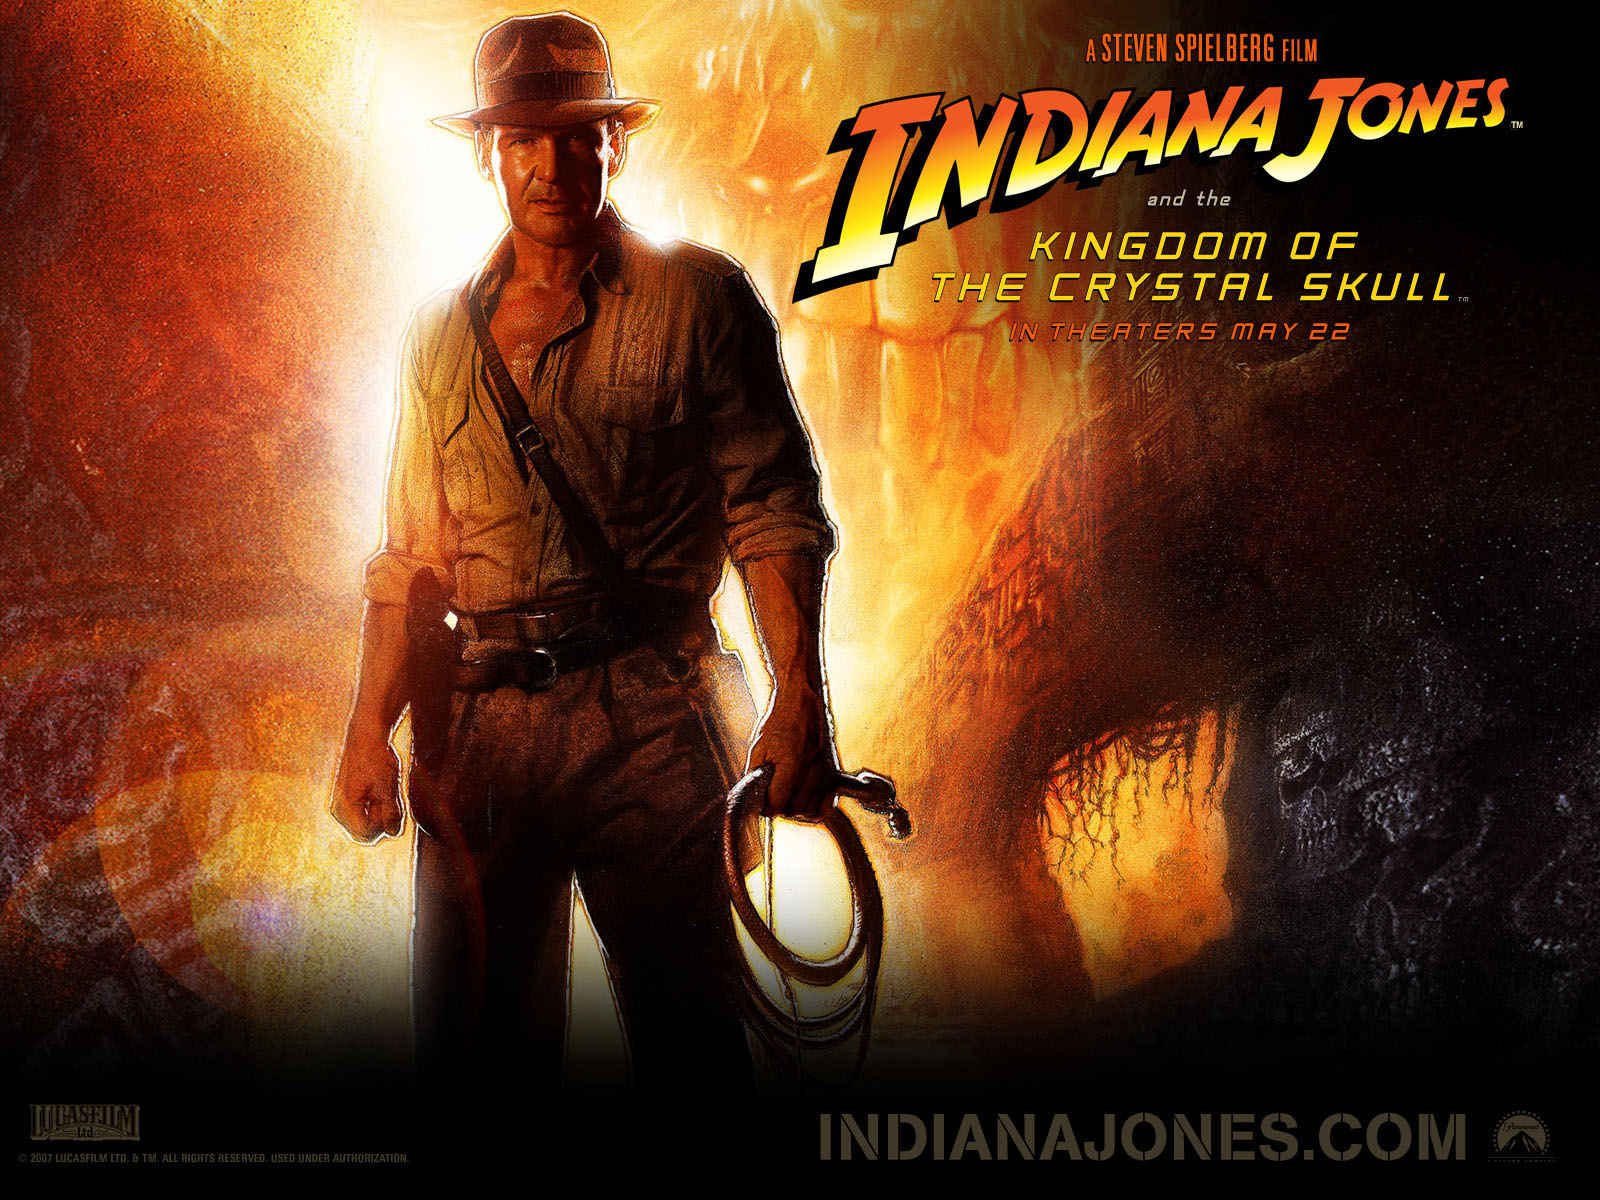 Indiana Jones'un dönüşü 1